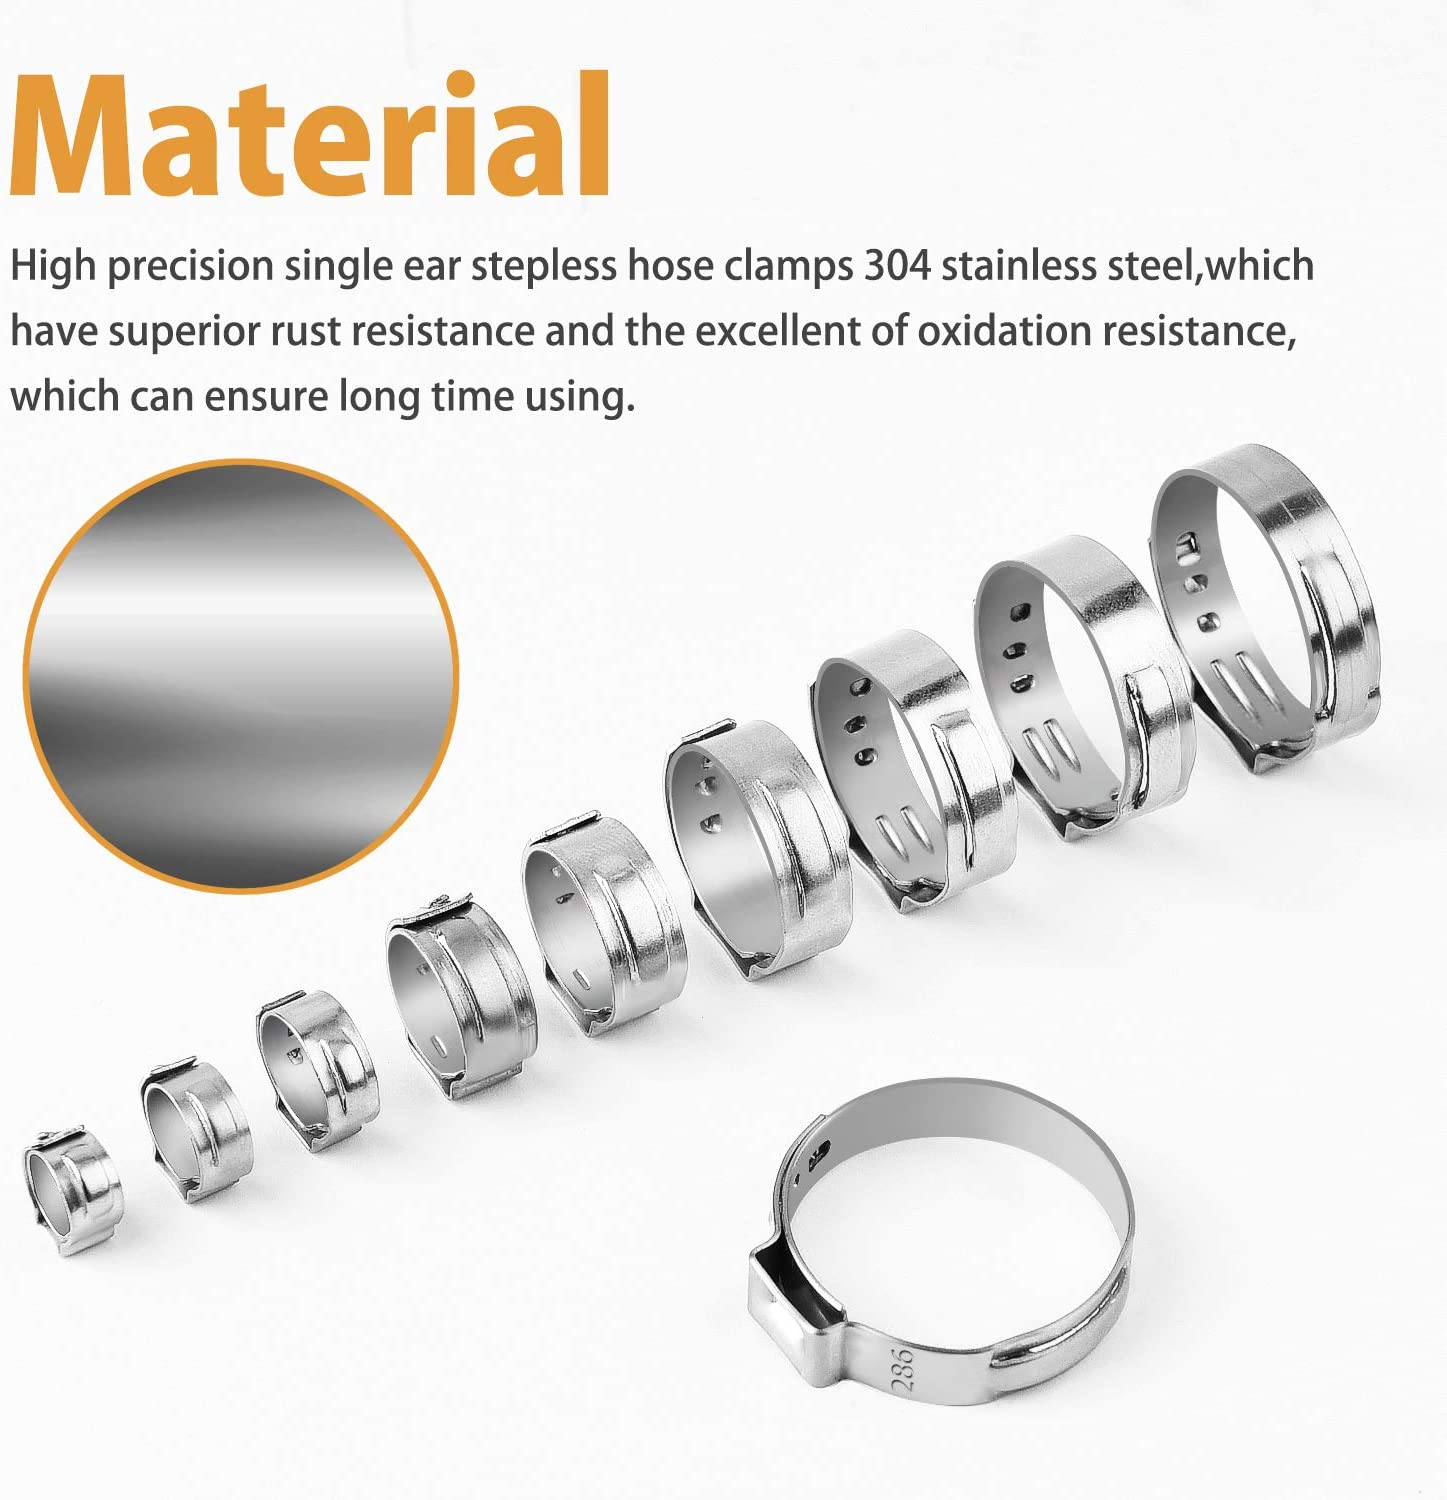 VIGRUE 115Pcs 304 Stainless Steel Single Ear Hose Clamps, 6-28.6mm Stepless Hose Clamps with Ear Clamp Pincer, Cinch Rings Crimp Hose Clamps Assortment Kit for Water Pipe, Plumbing and Automotive Use - -